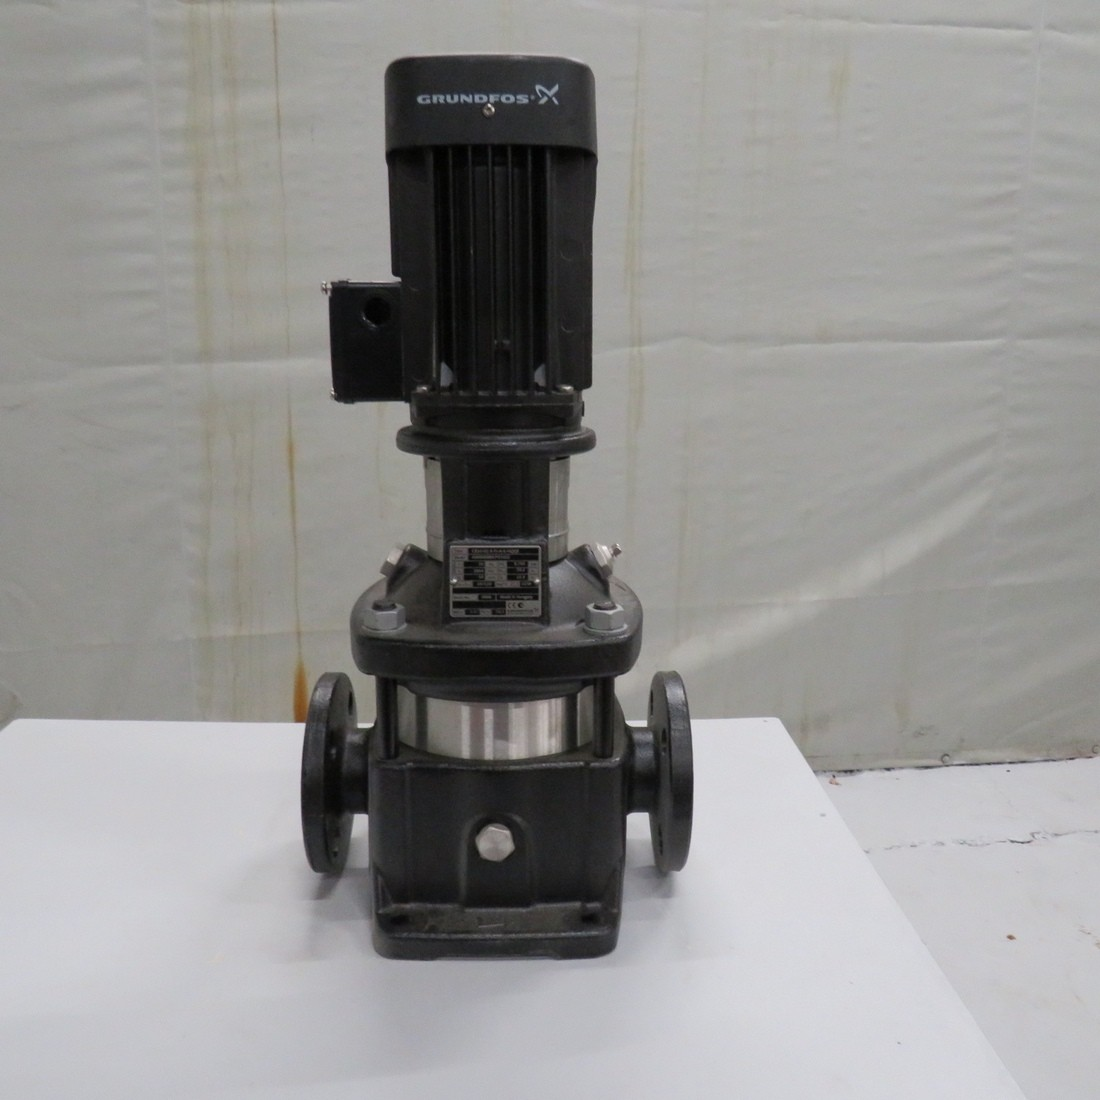 R10A1097  Vertical GRUNDFOS centrifugal pump type CR10-02